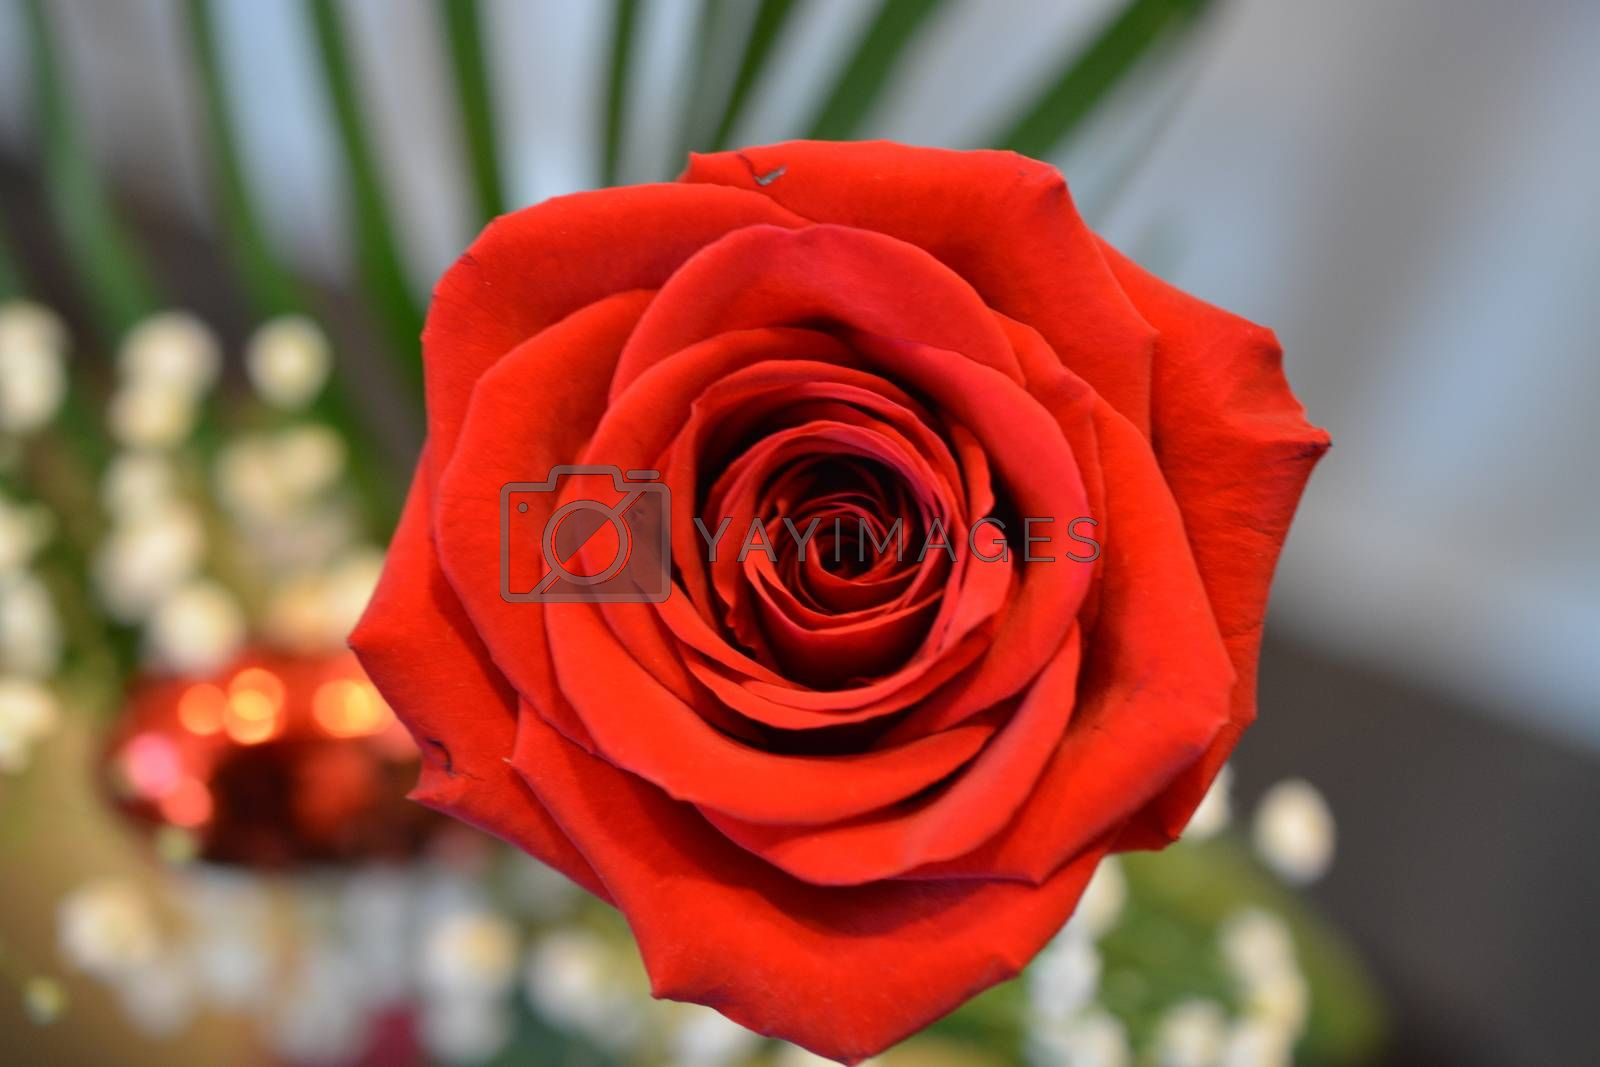 A red rose shown close up.